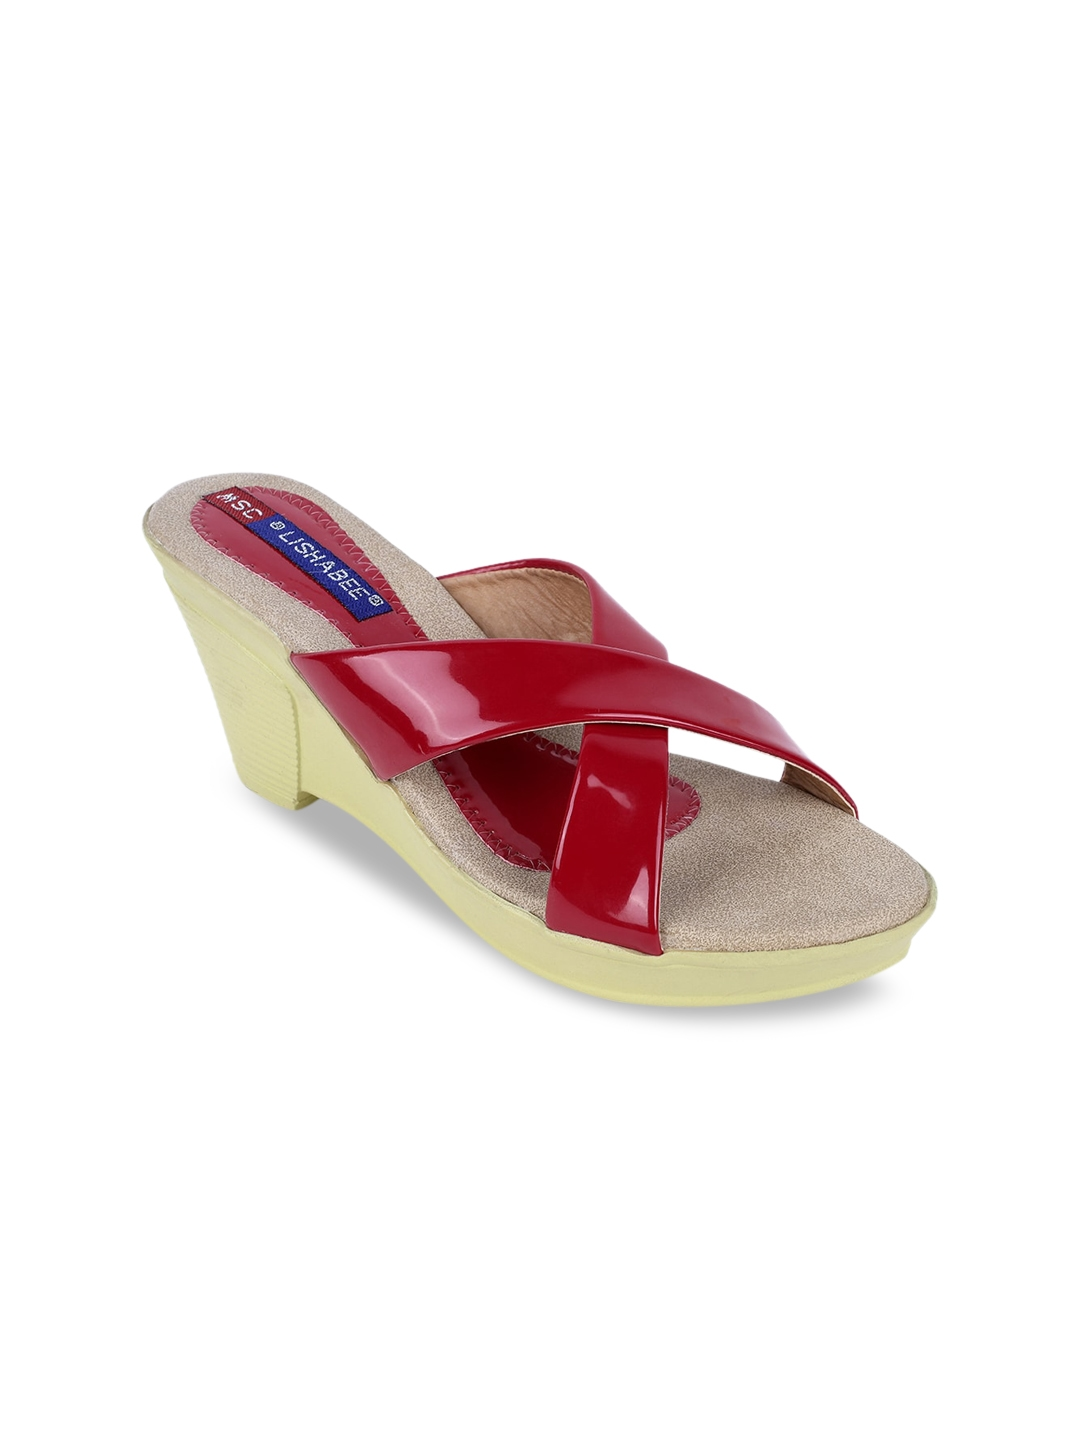 MSC Women Red Solid Wedges